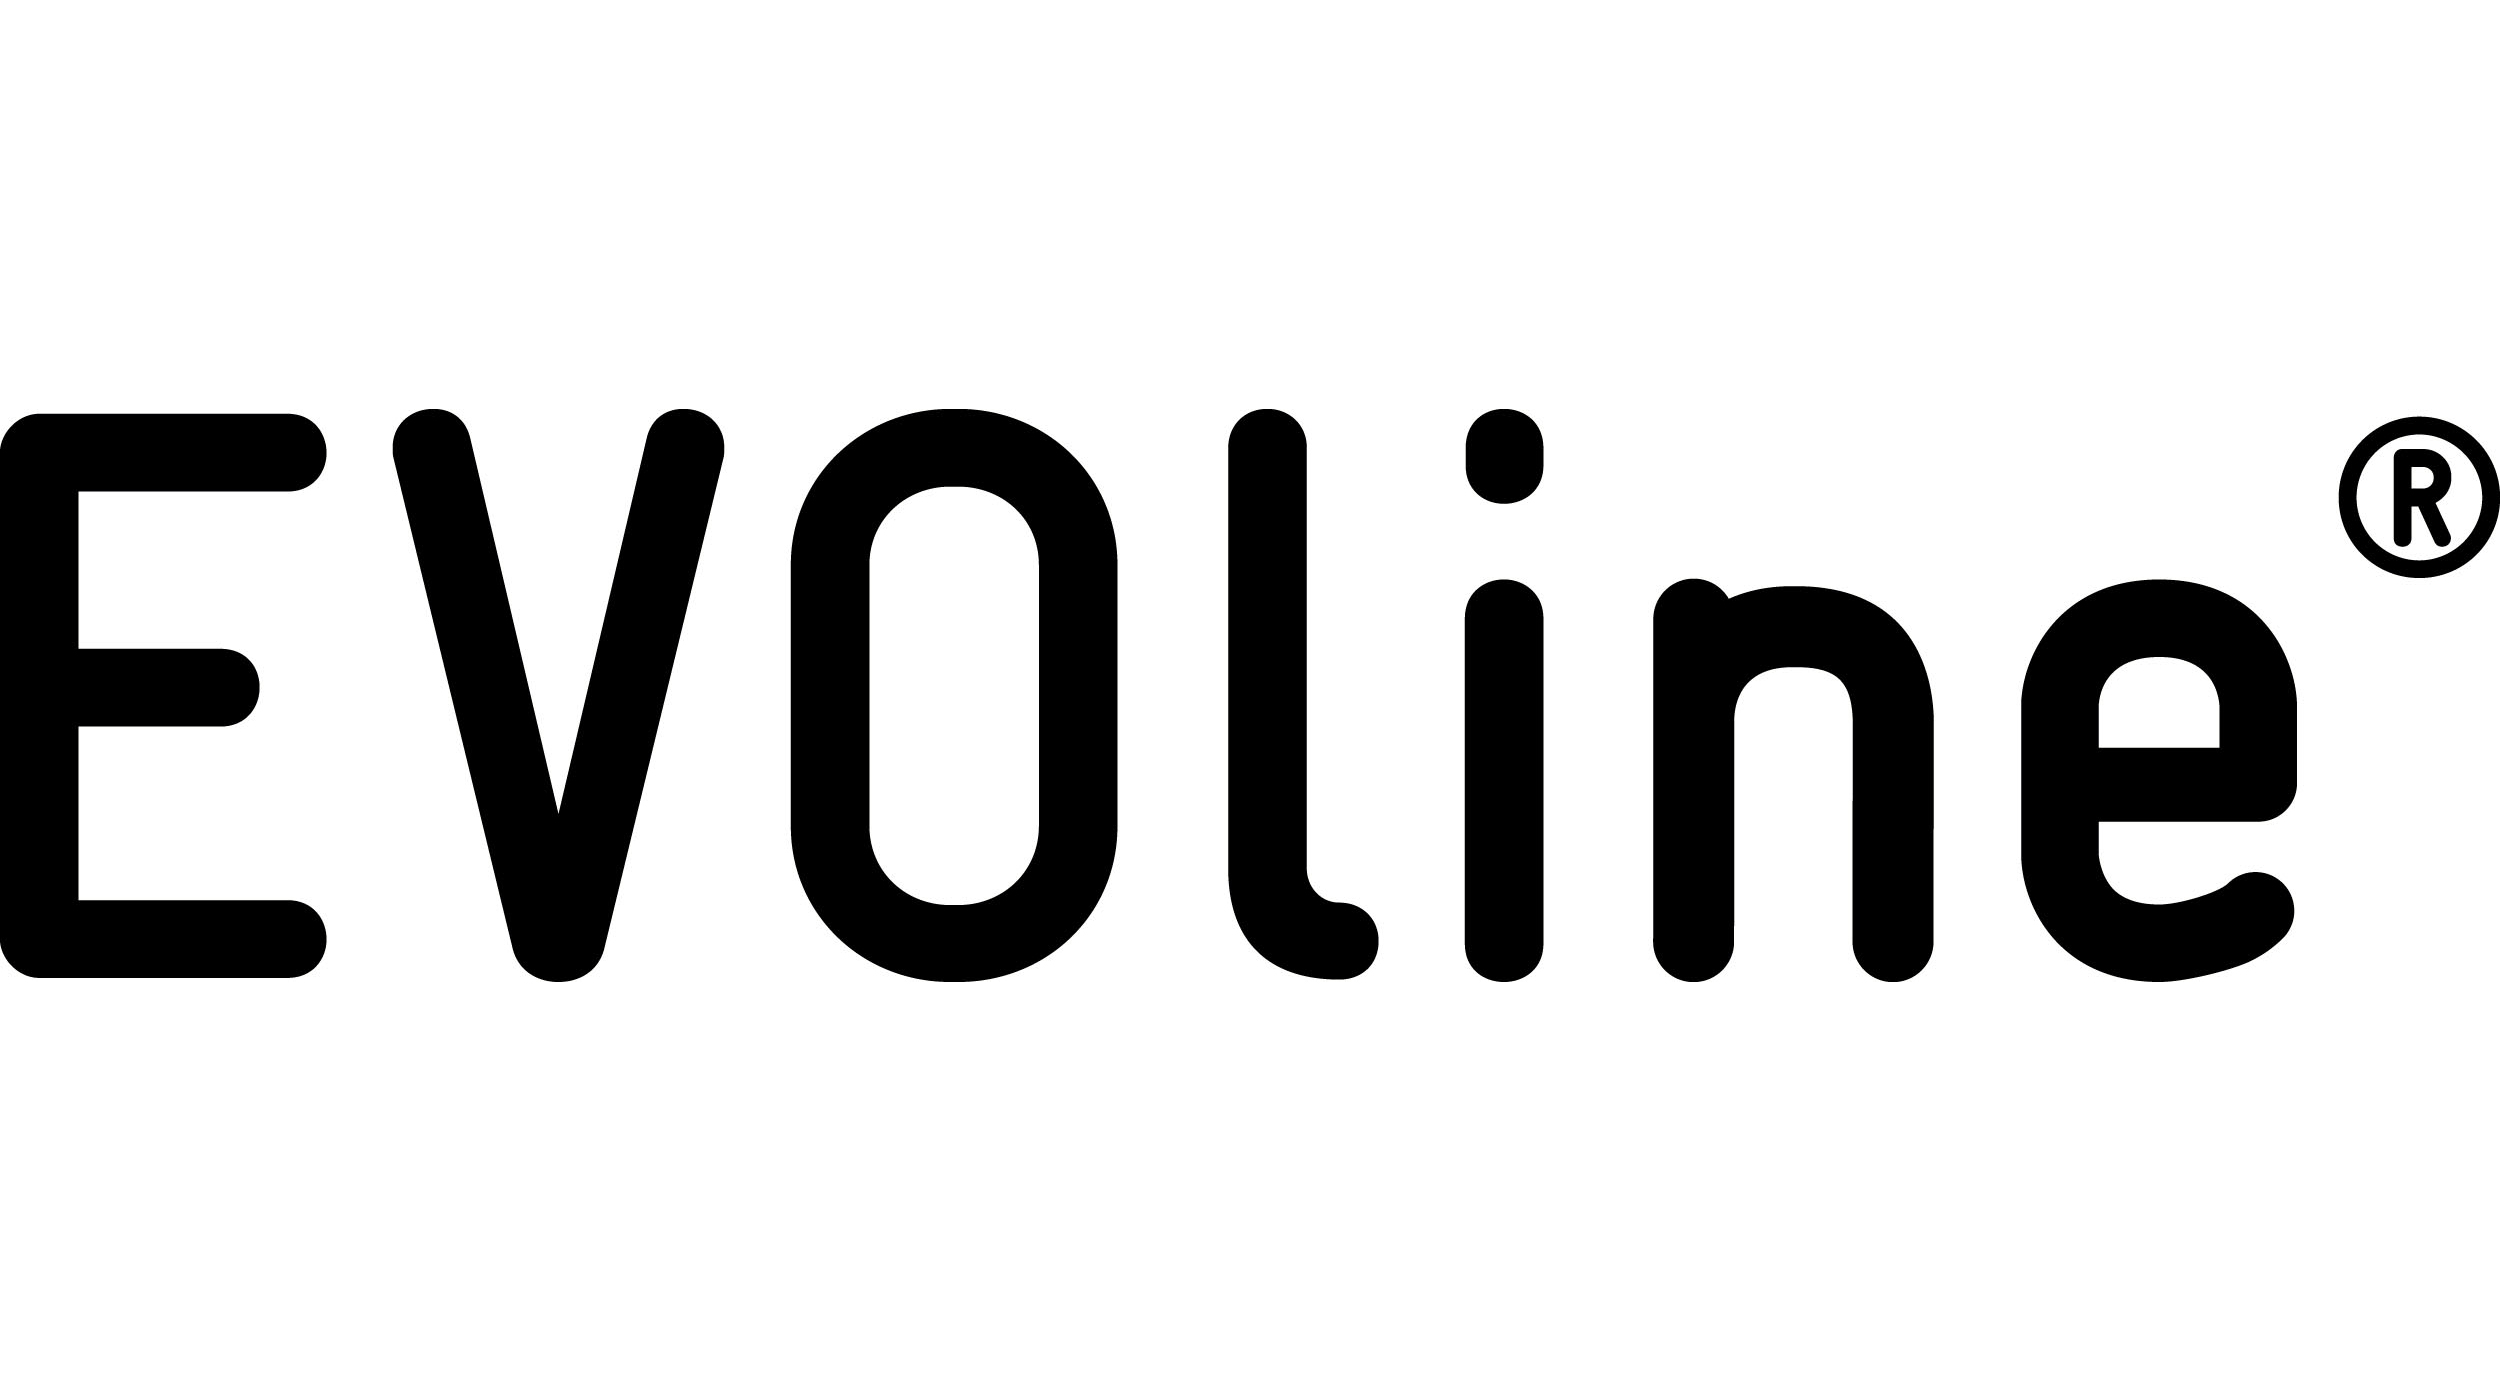 Evoline, Schulte Evoline, Evoline Port